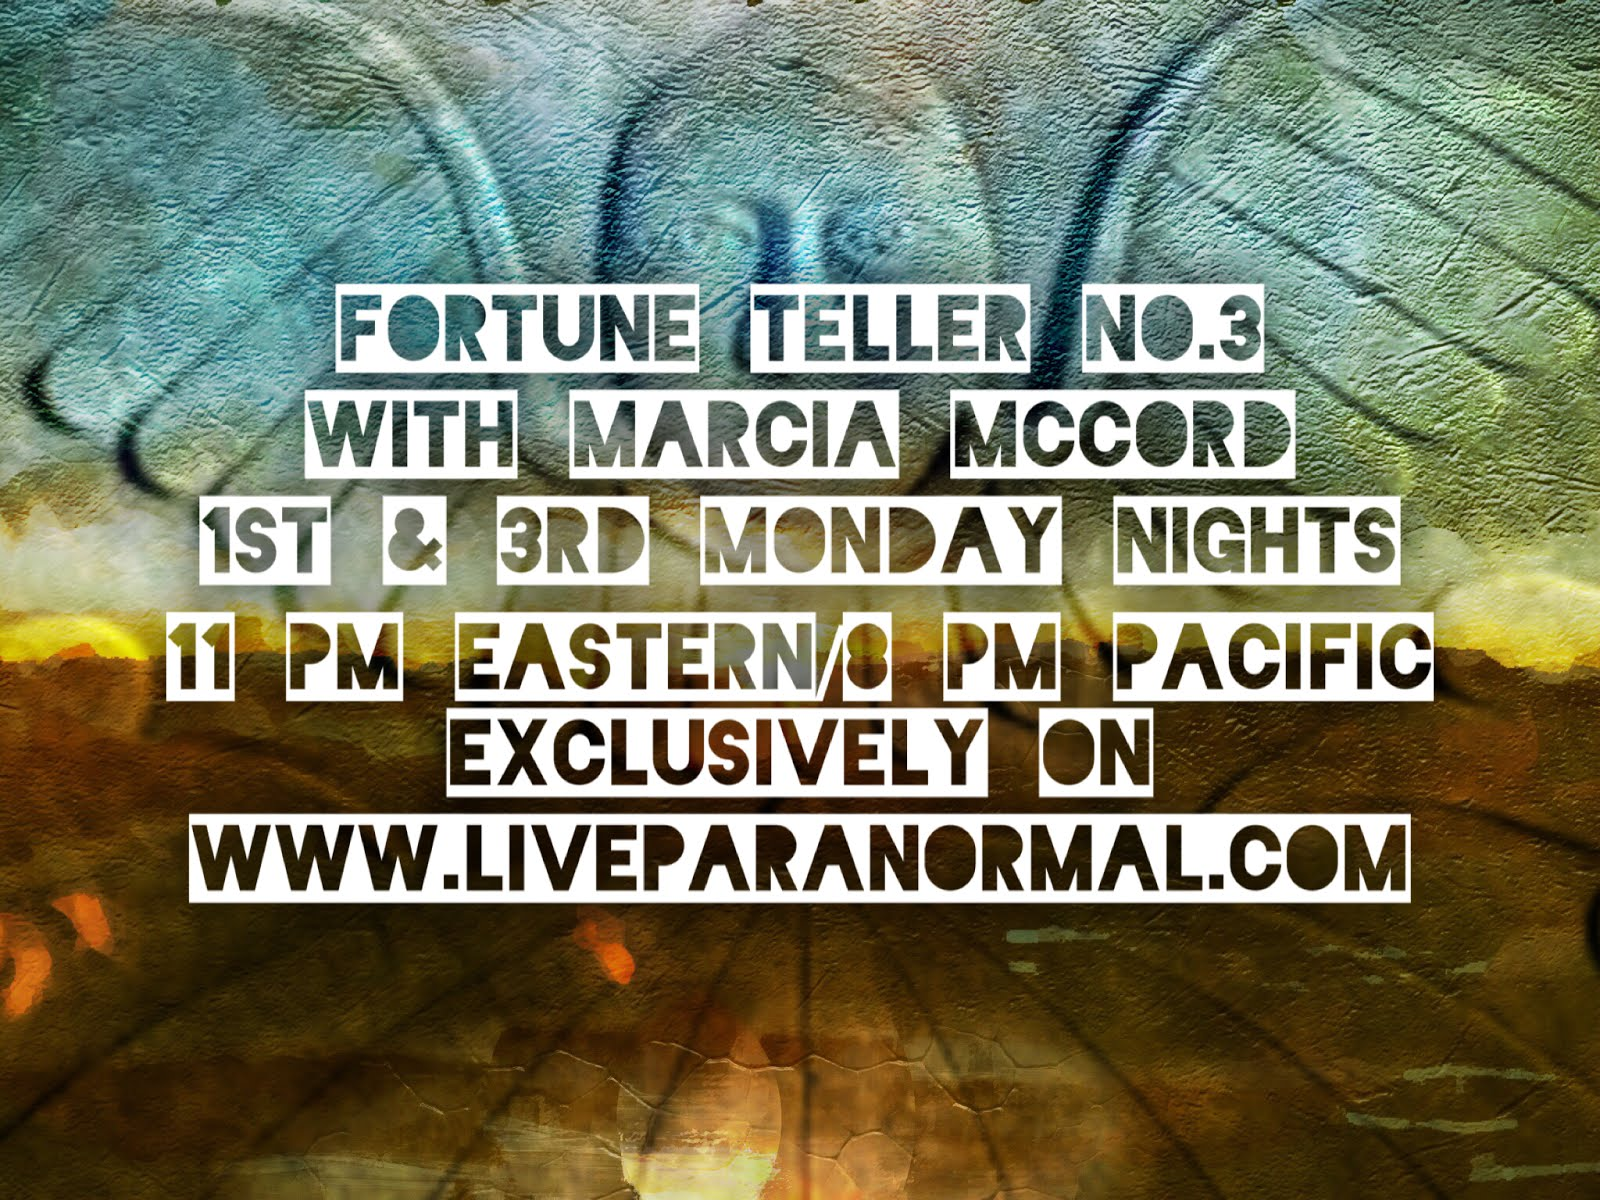 Fortune Teller No. 3 Web Radio